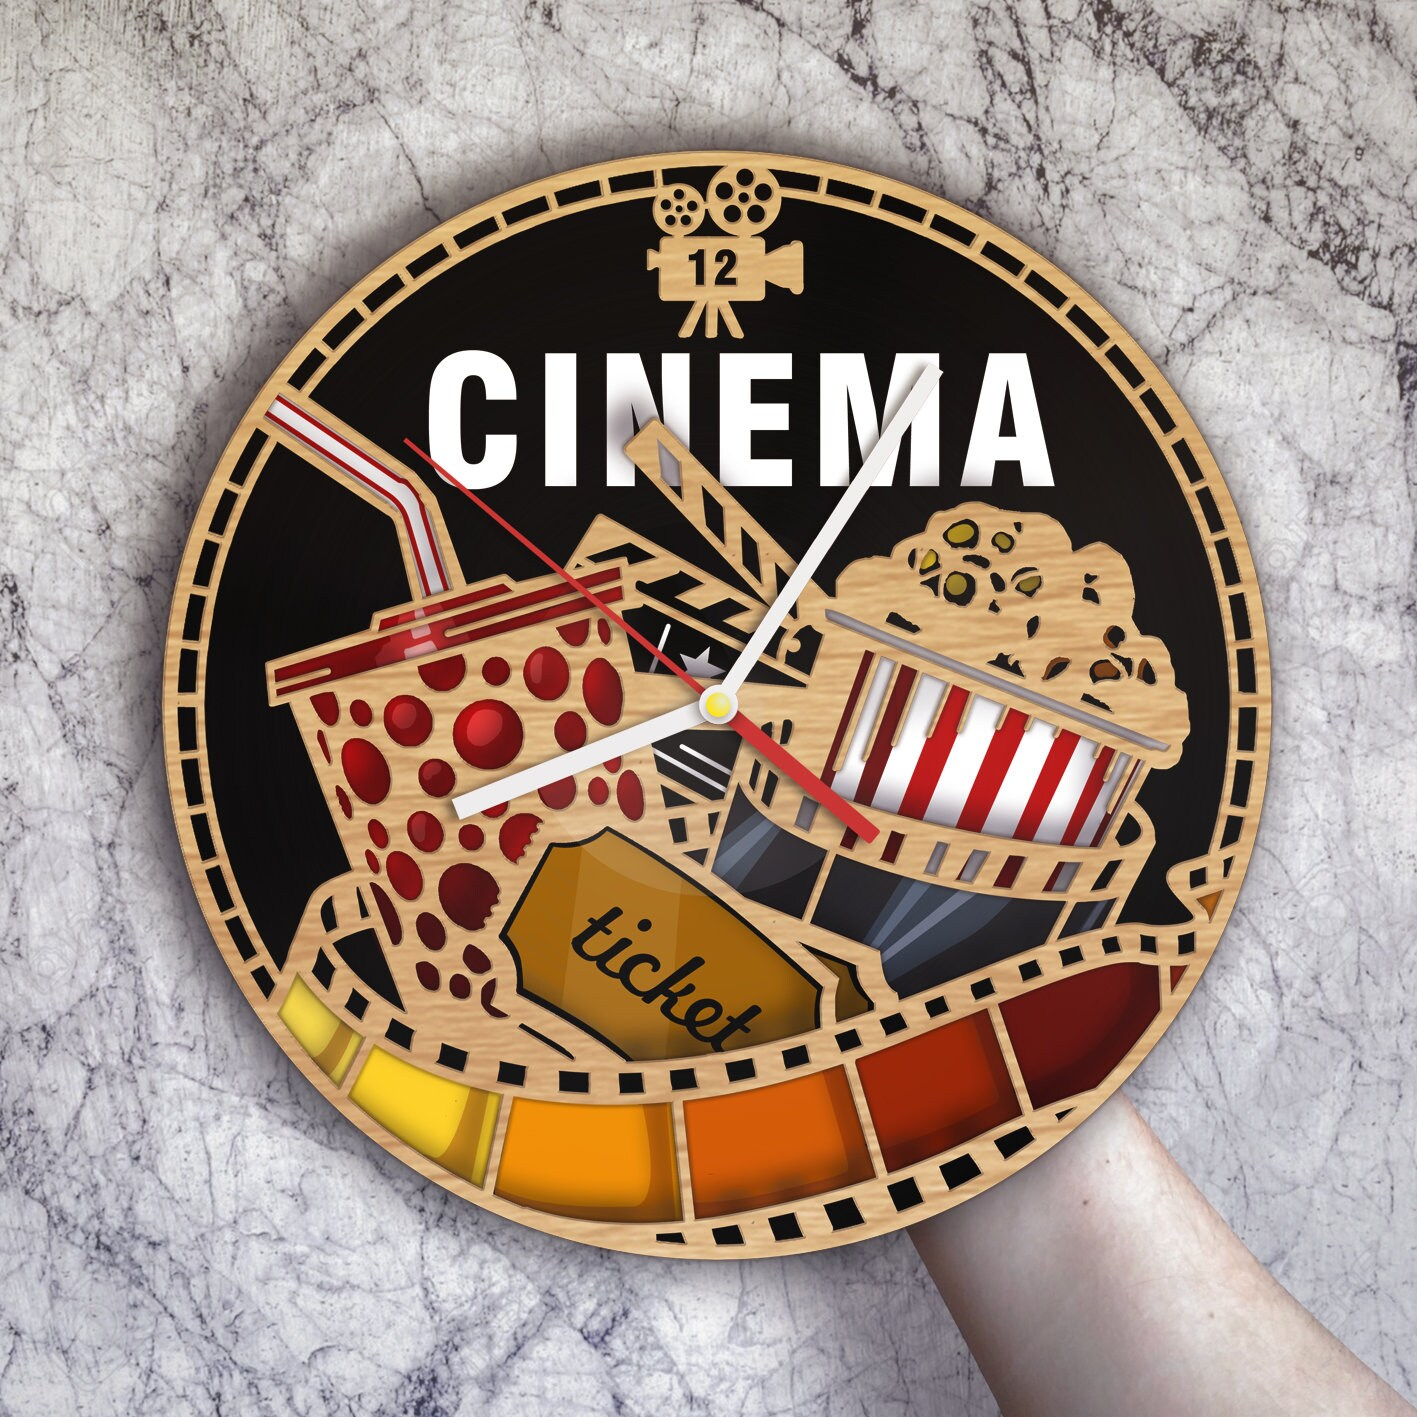 Cinema Art Movie Wall Clock Decor Home Gifts For Her Party Decorations Ornament